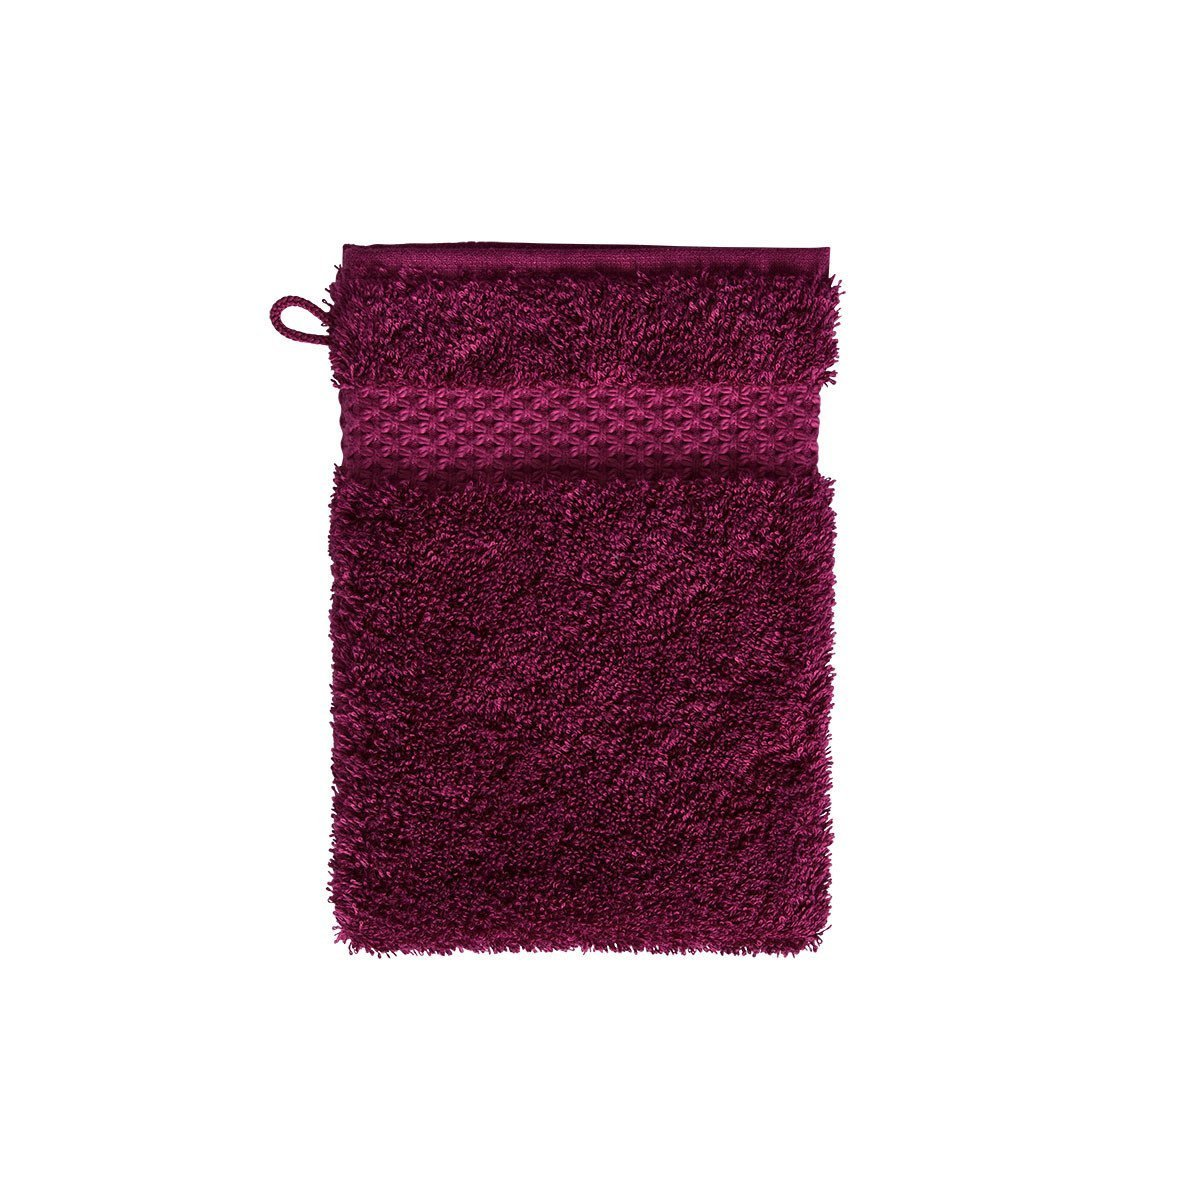 Fig Linens - Etoile Cerise Cranberry Bath Mitt by Yves Delorme